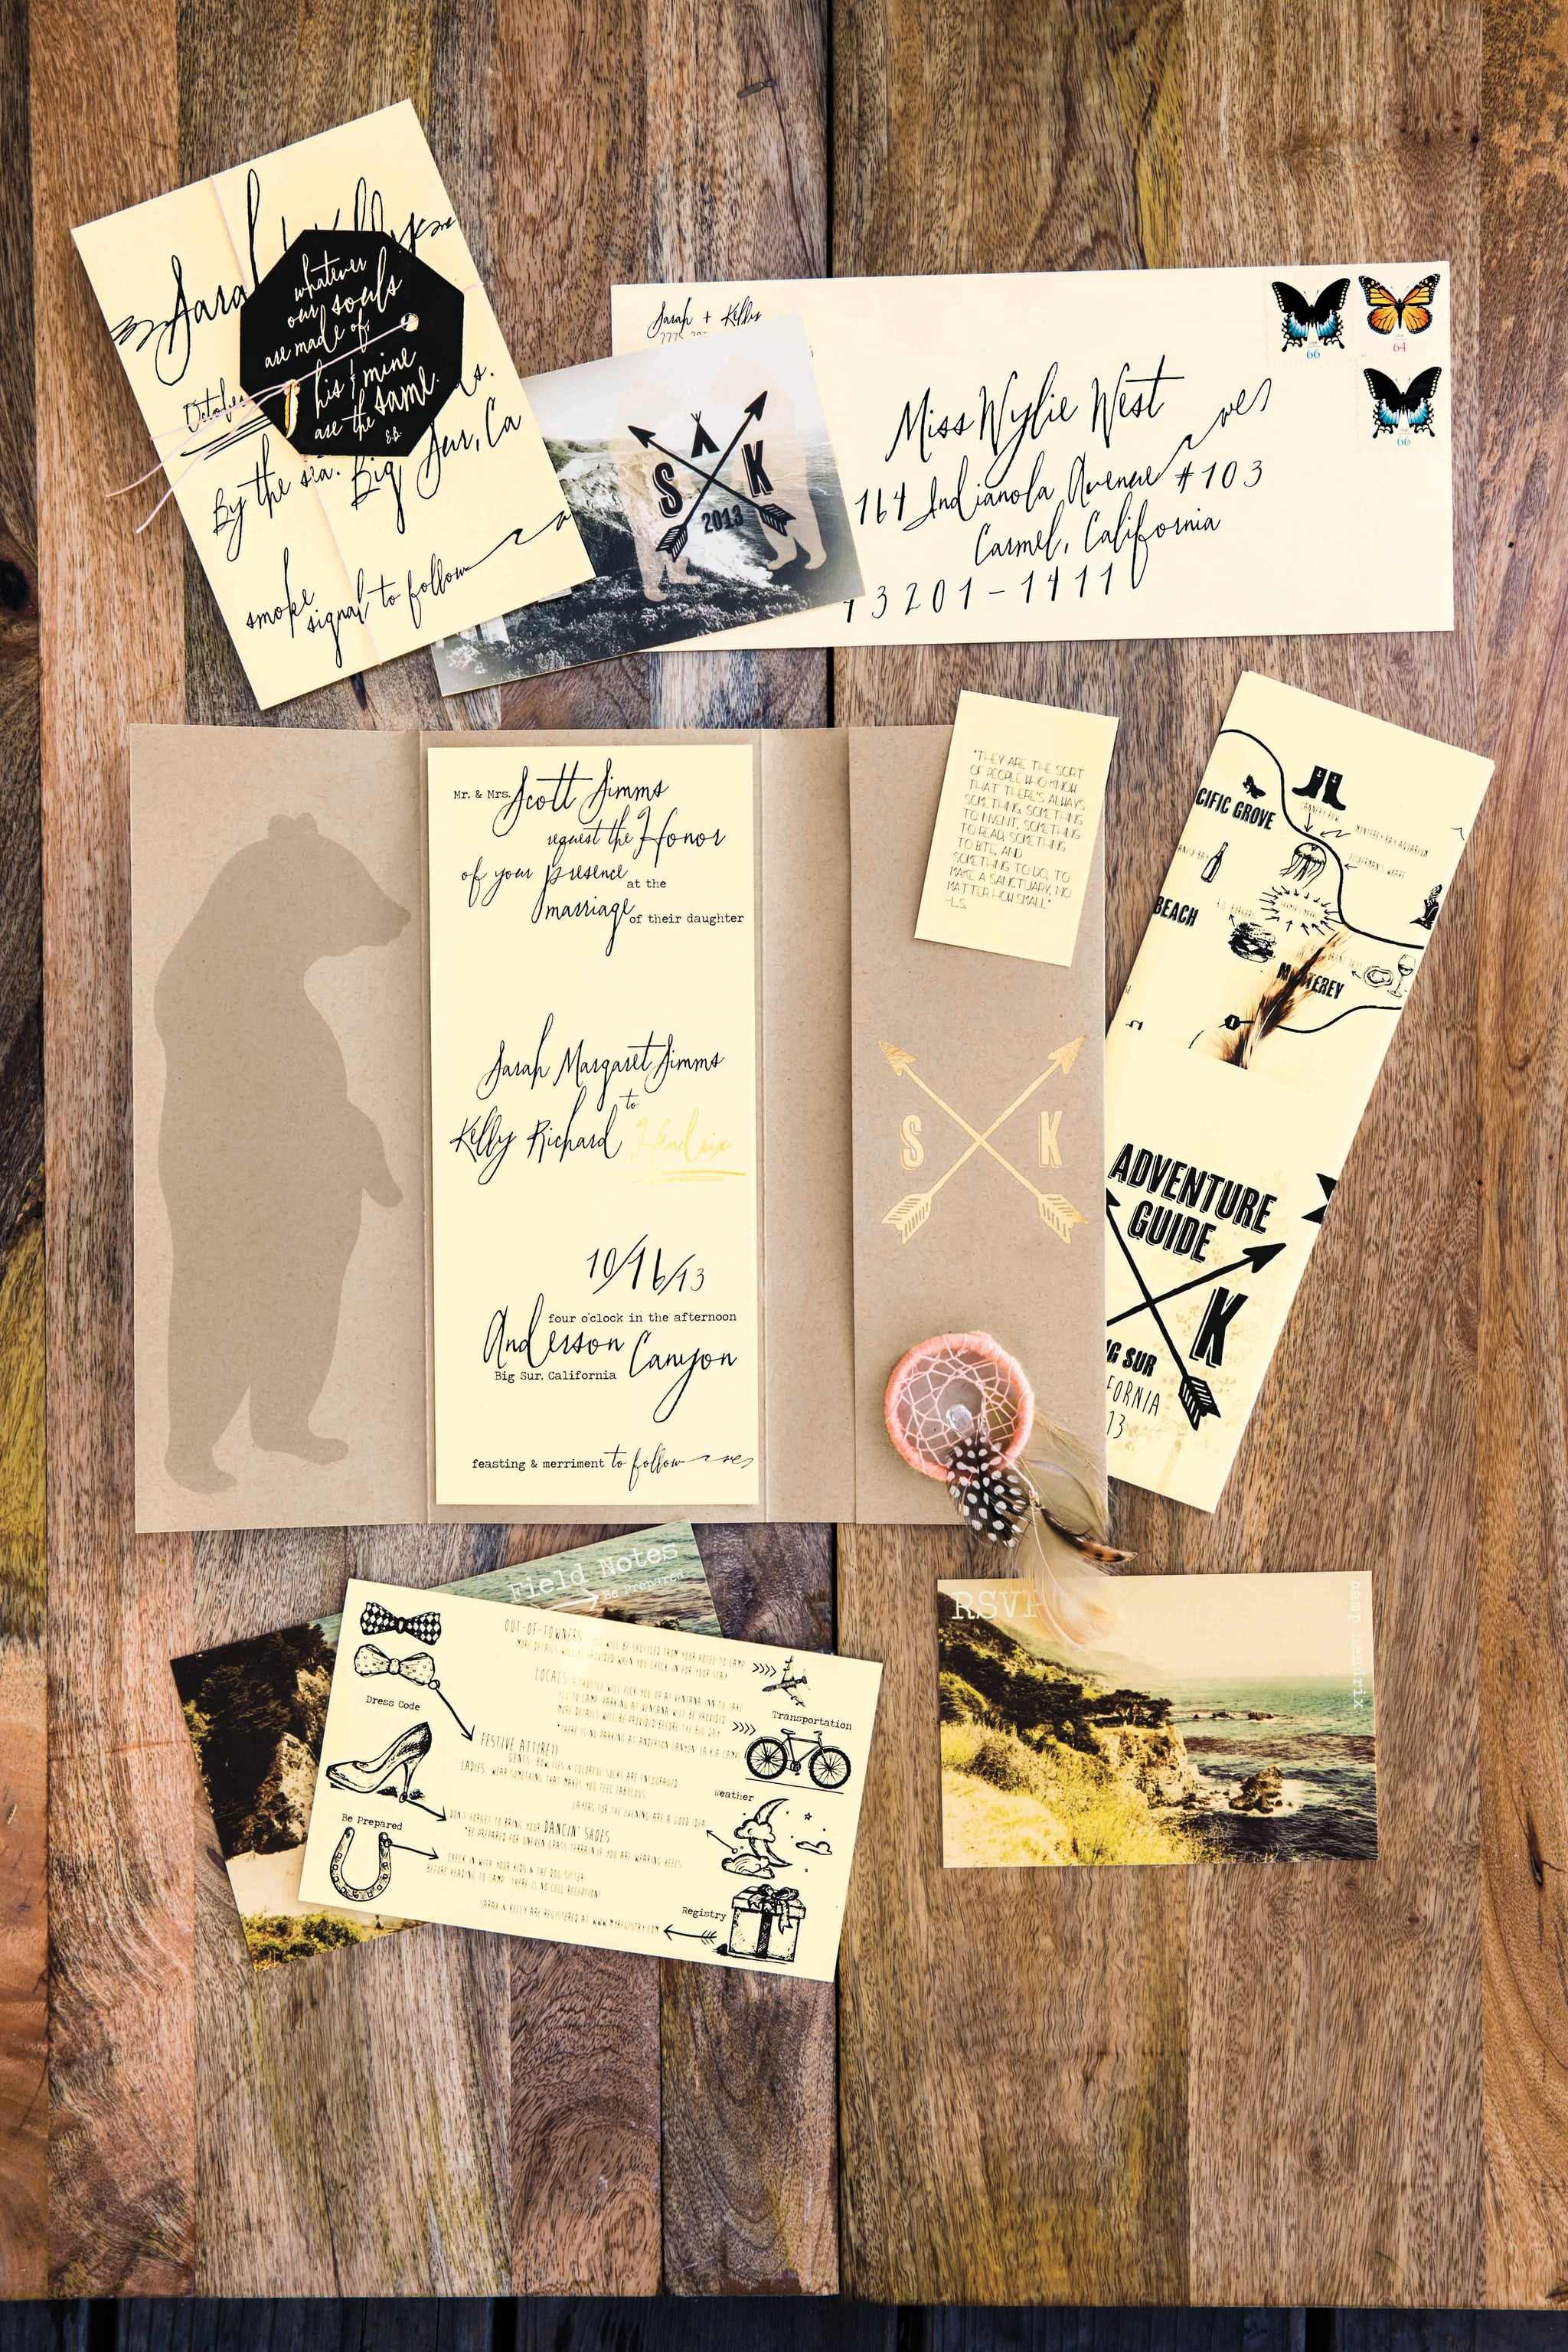 Vintage postcard-inspired invites and a hand-drawn map